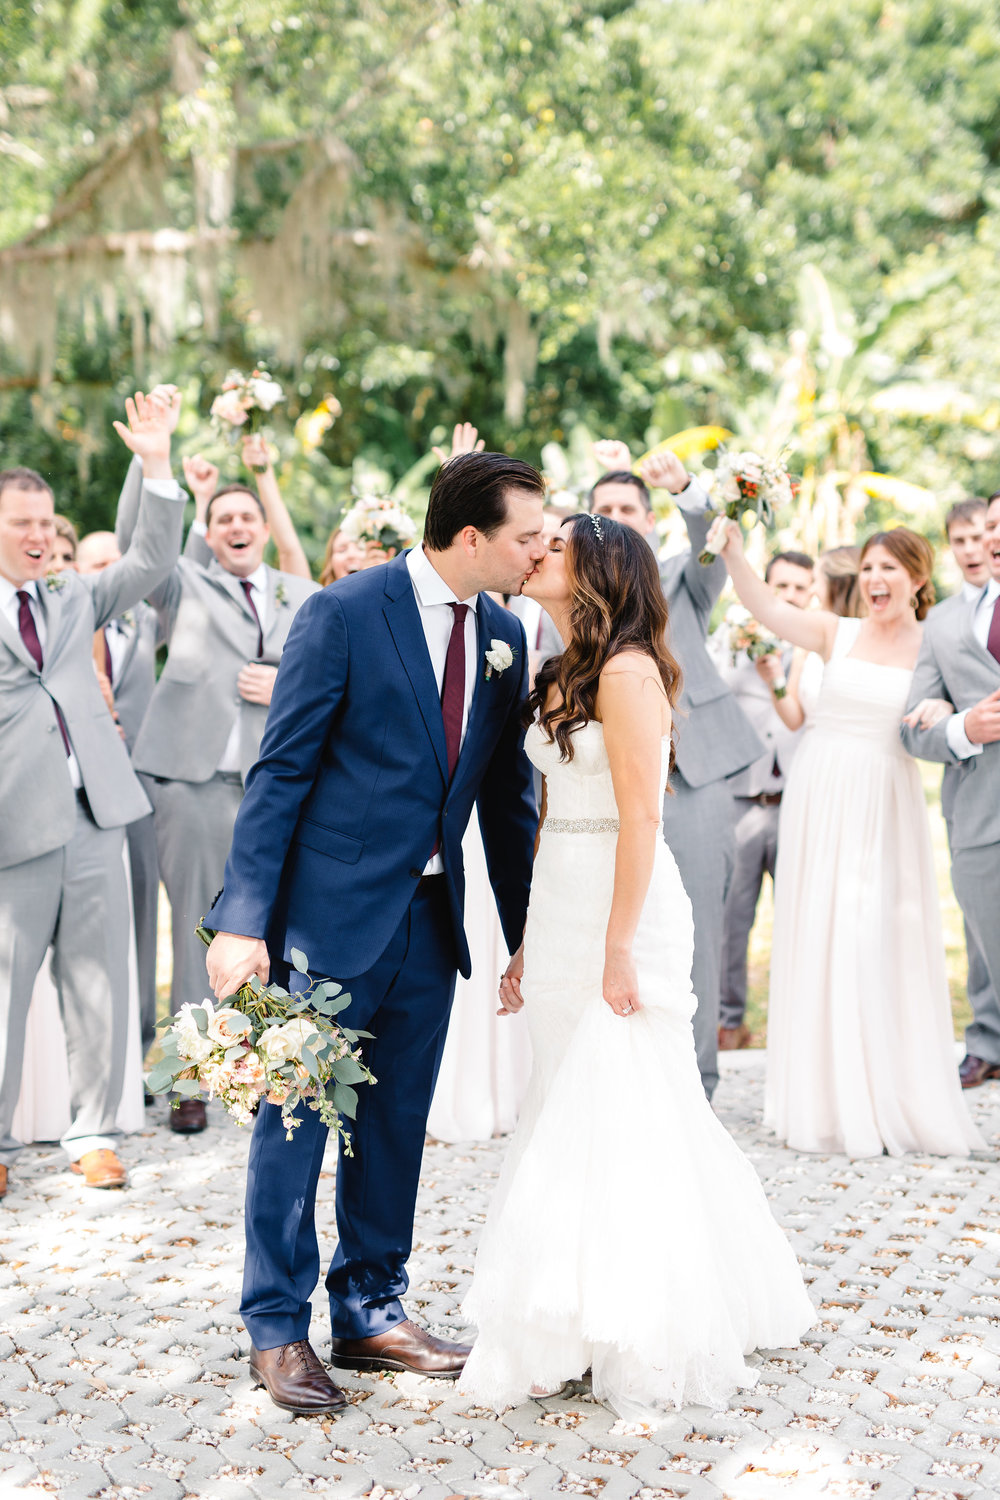 First of many kisses, Orlando bride and groom